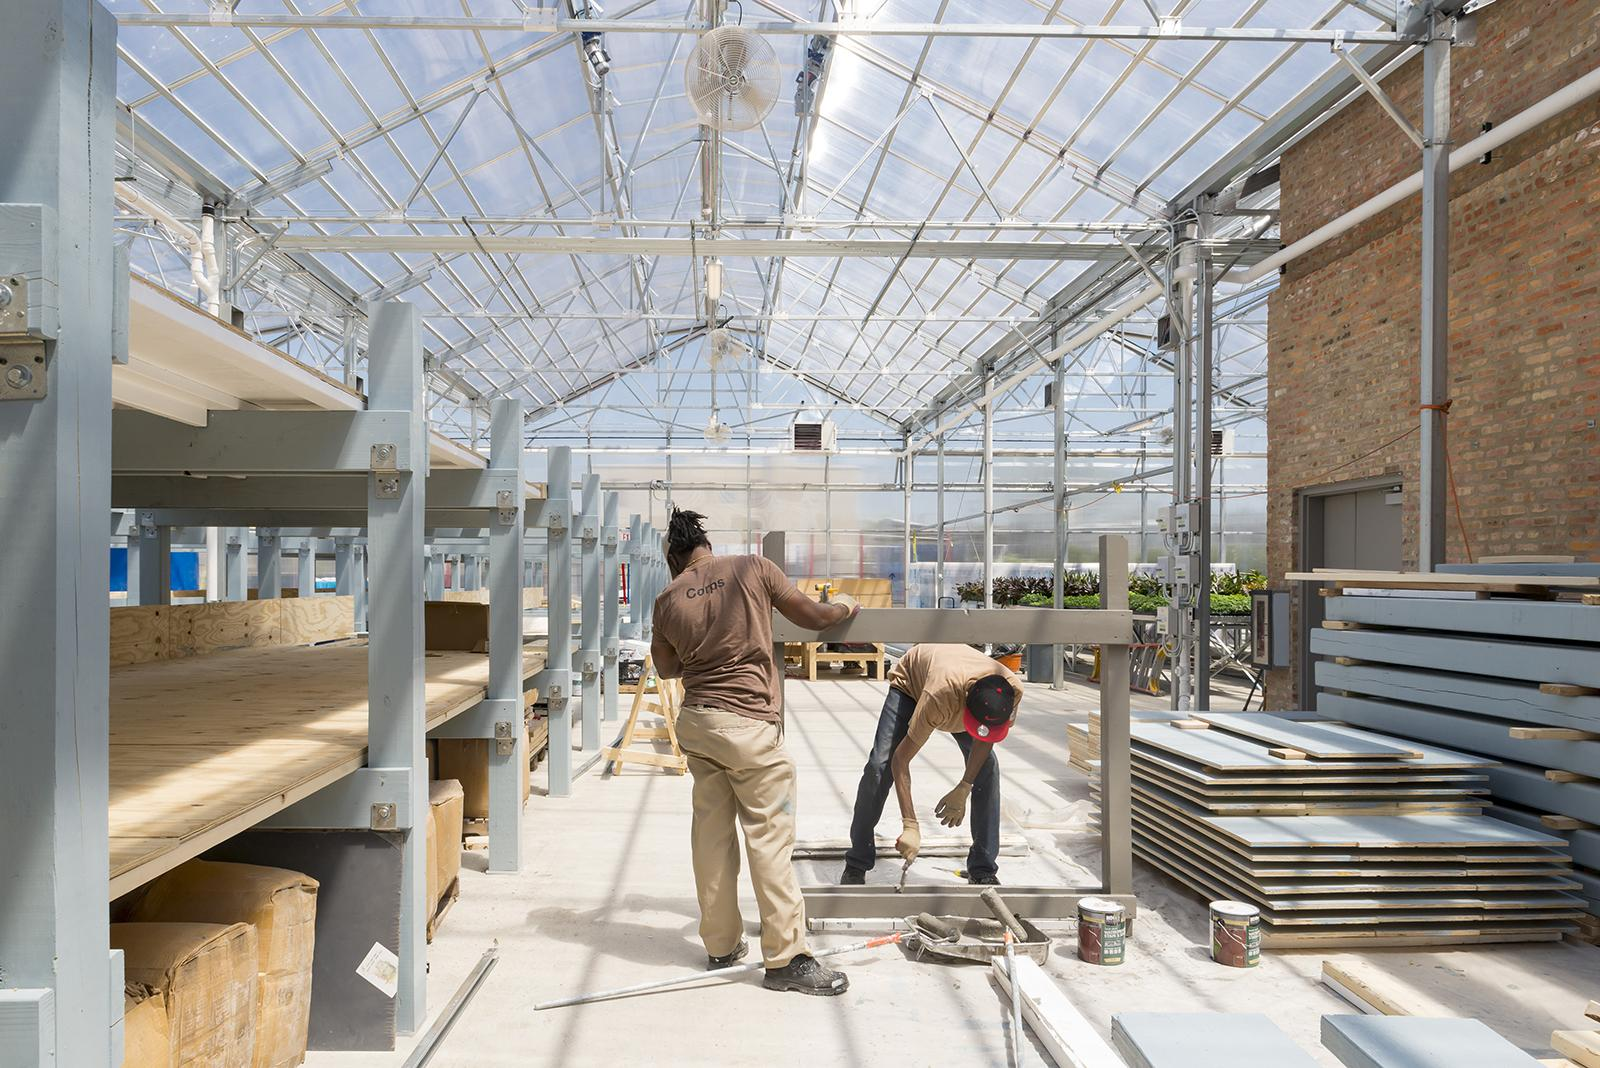 Participants in Windy City Harvest's Corps training program construct a platform for the Farm on Ogden's aquaponics system. (Courtesy Chicago Botanic Garden)